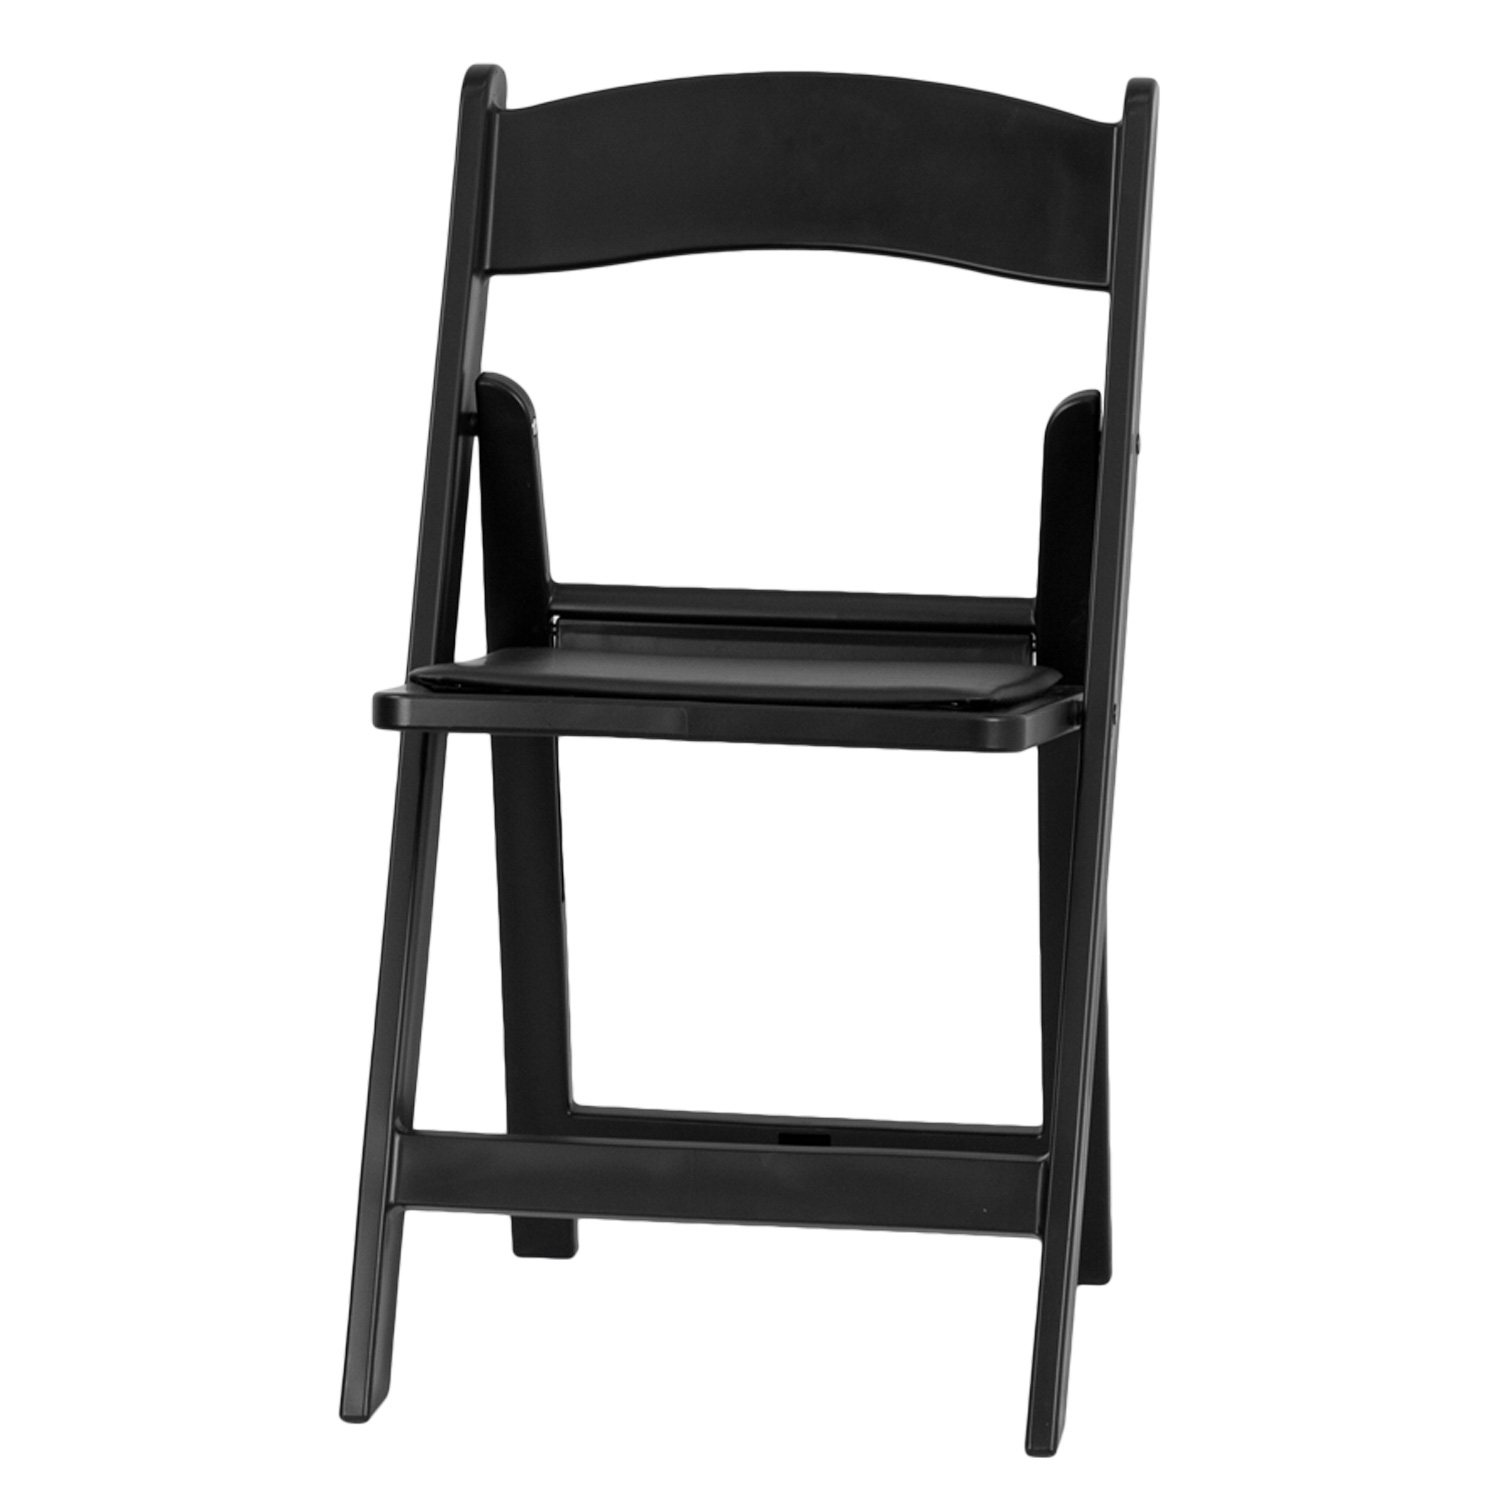 Hercules Resin Folding Chair Black Sam s Club